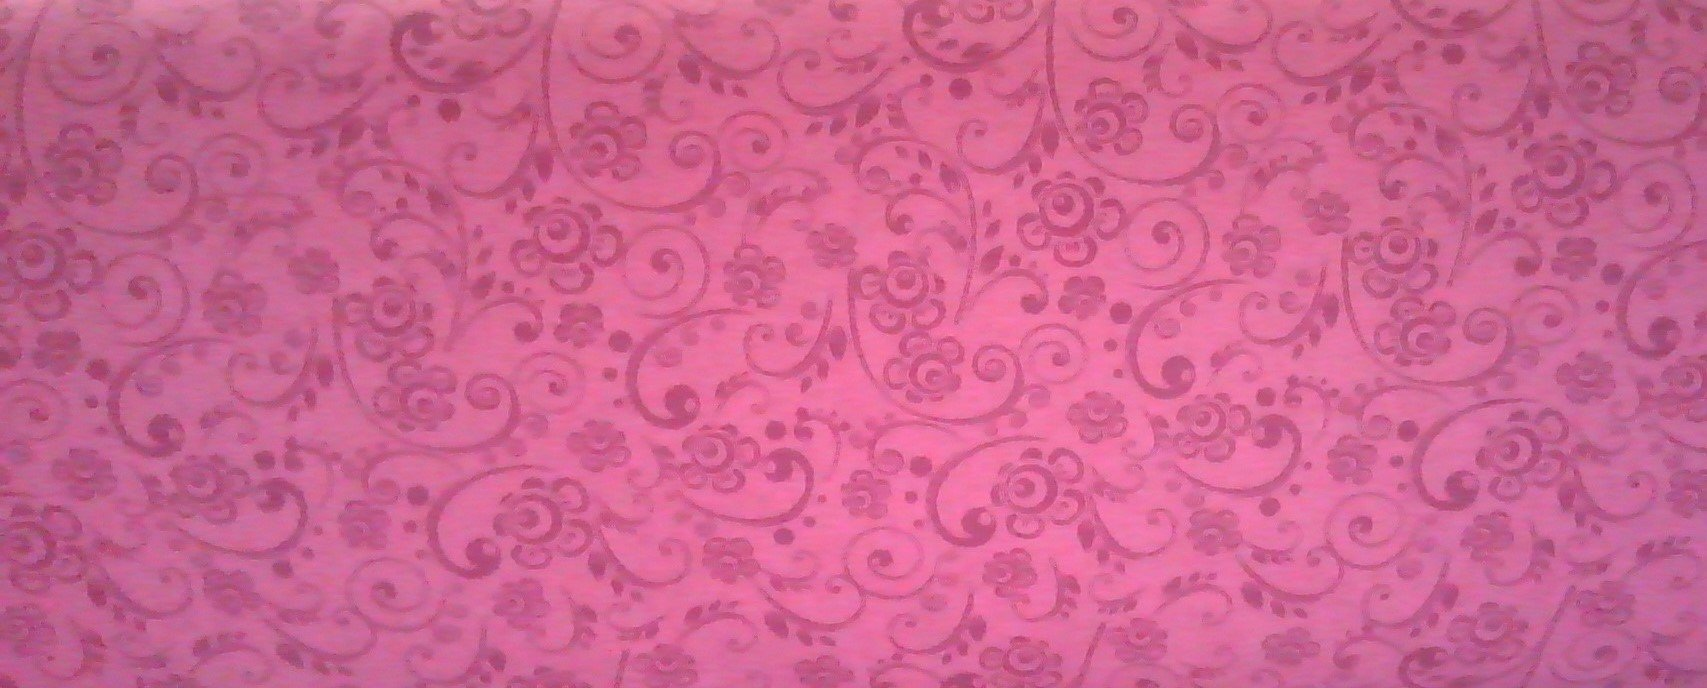 Choice Quilt Backing 108 Pink Floral BD-48496-101